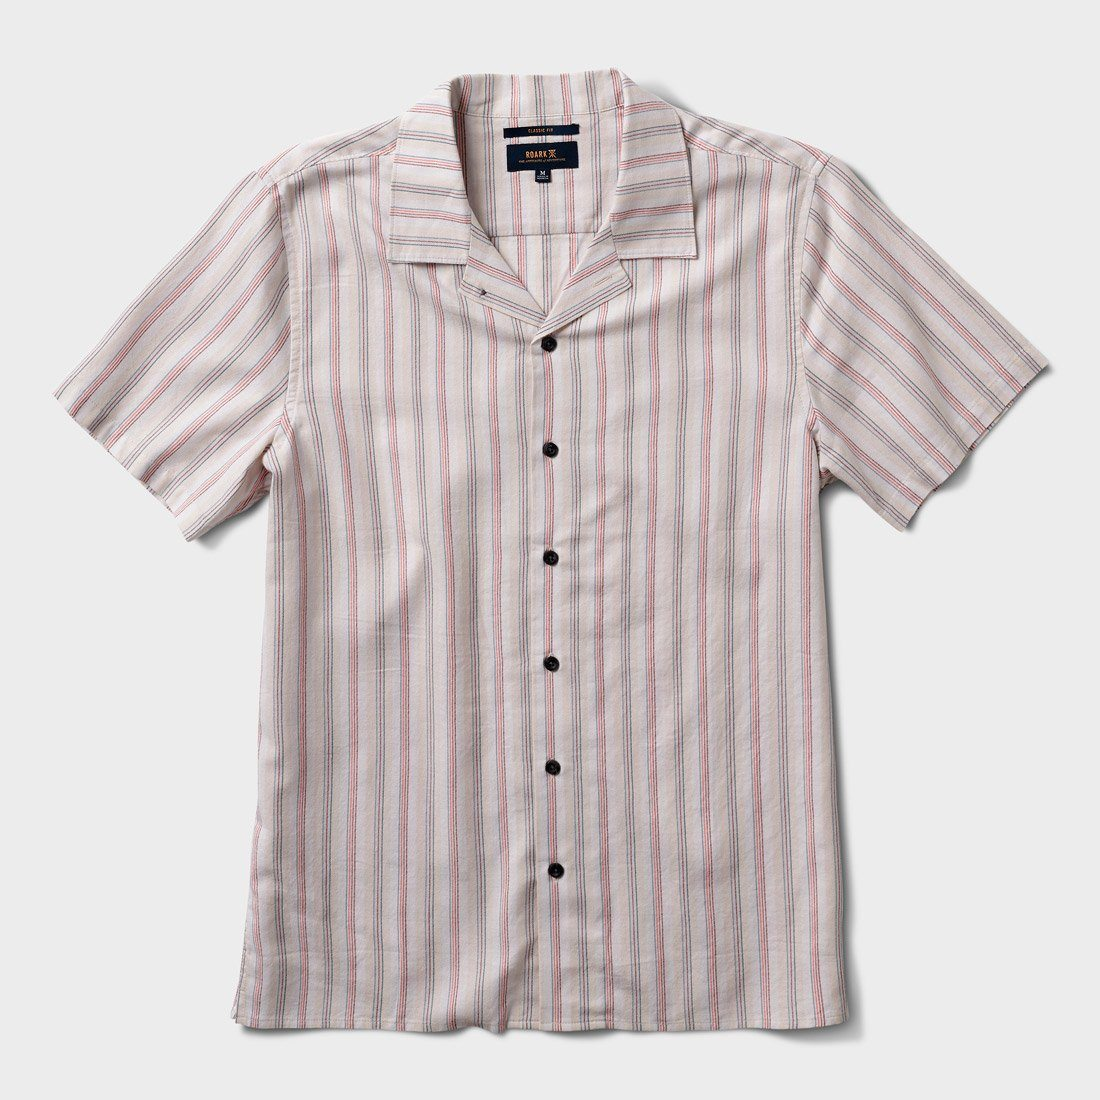 Roark Distilleryman Button Up Shirt White